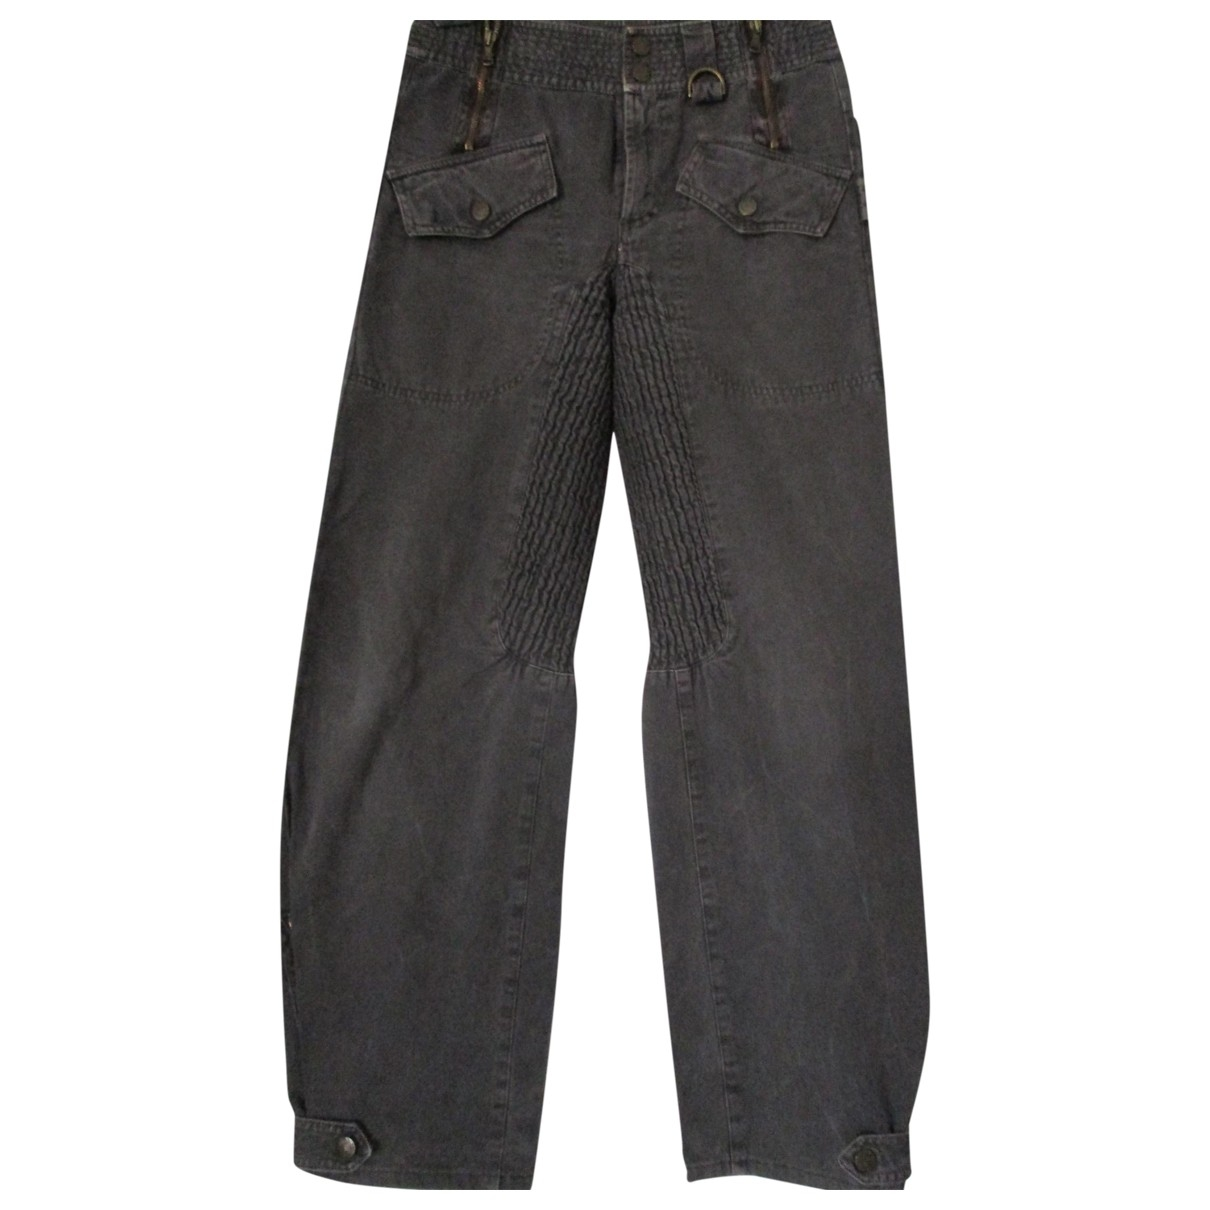 D&g \N Cotton Trousers for Women 40 IT